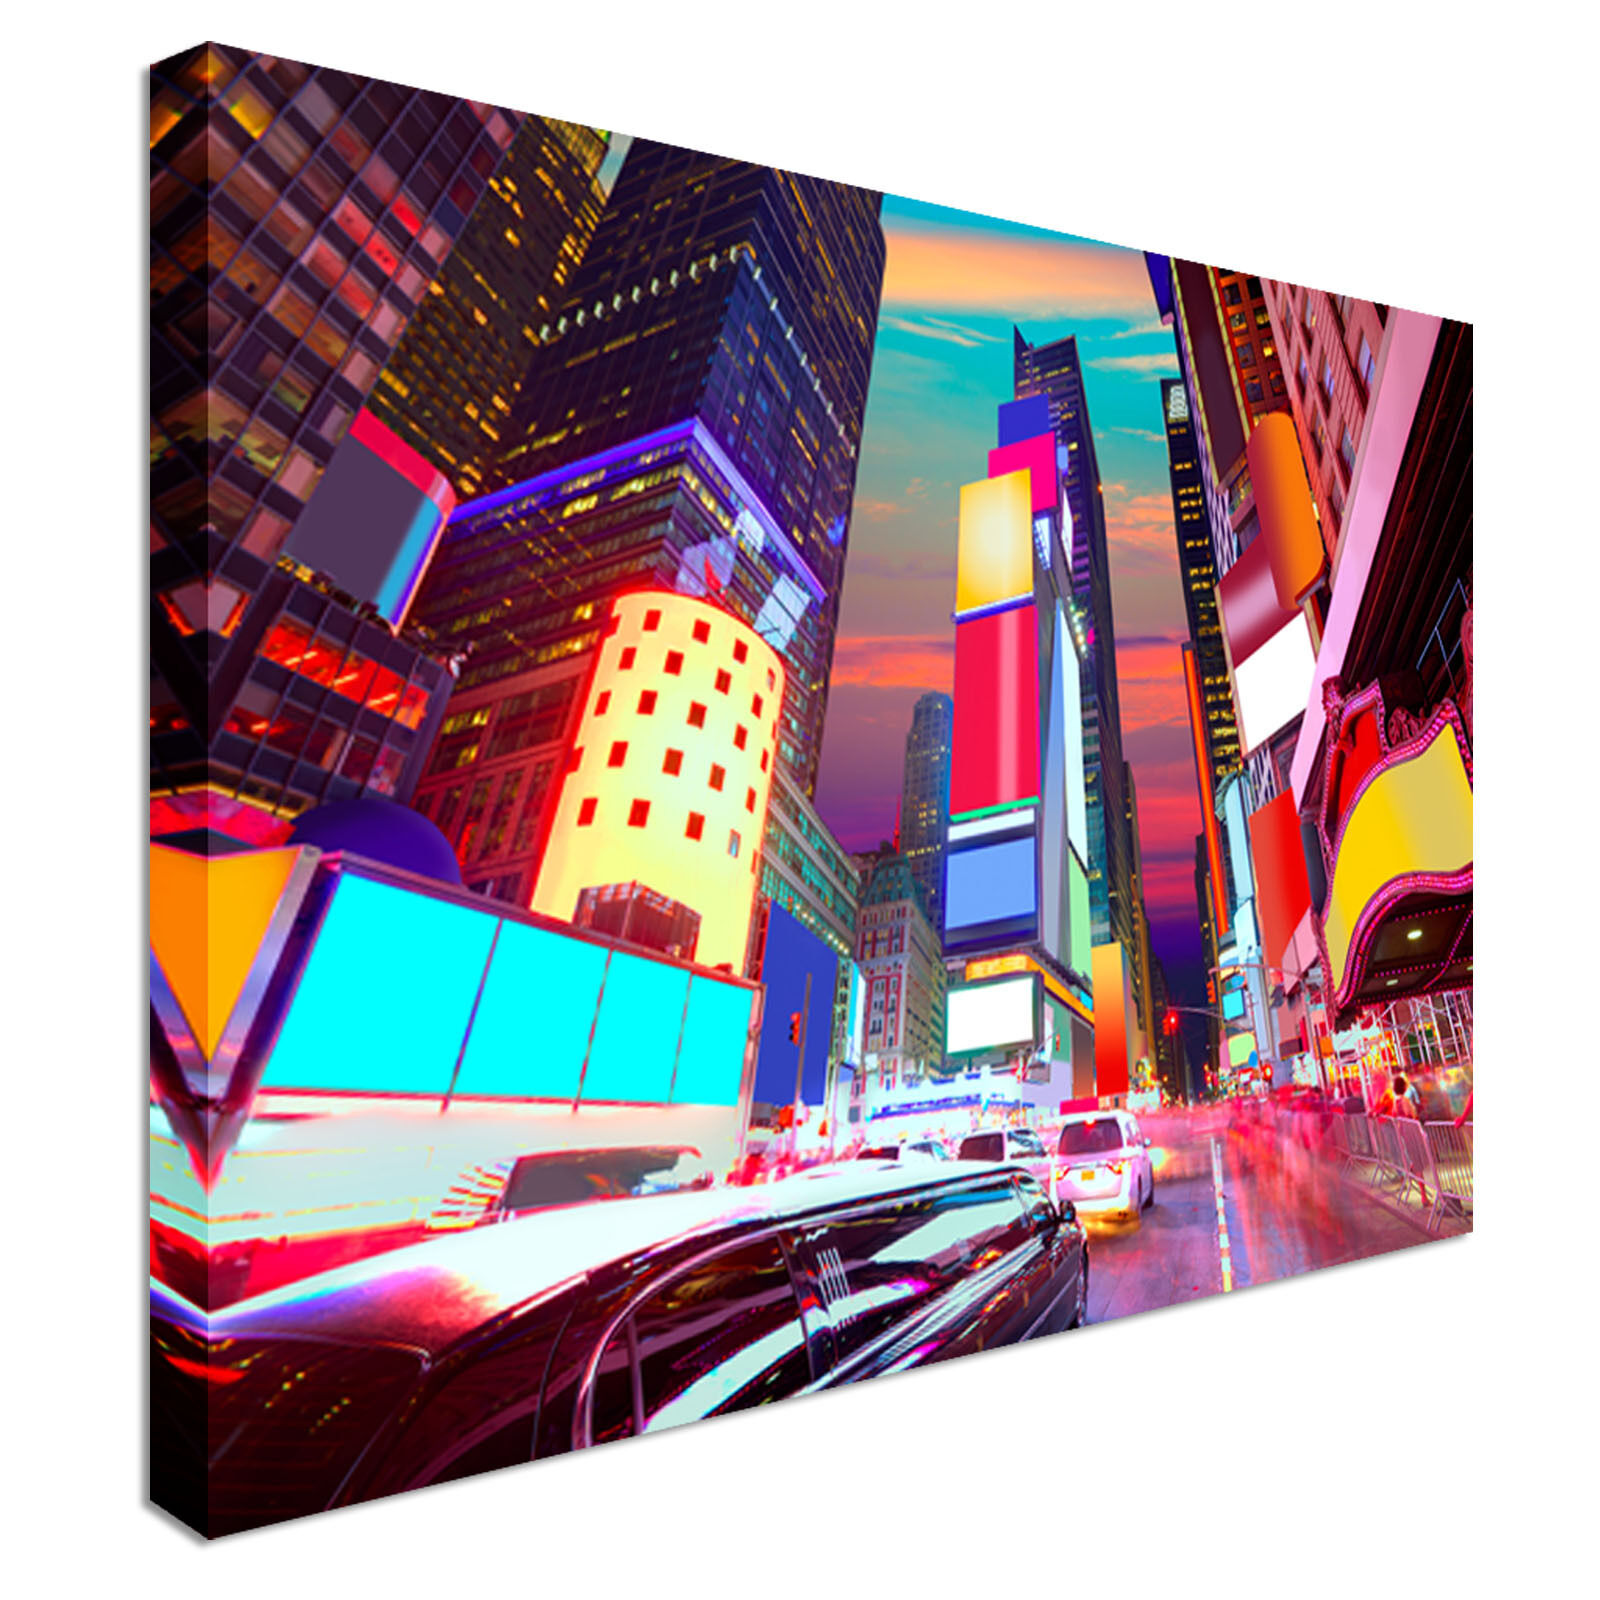 Times Square Night Lights Canvas wall Art prints high quality great value